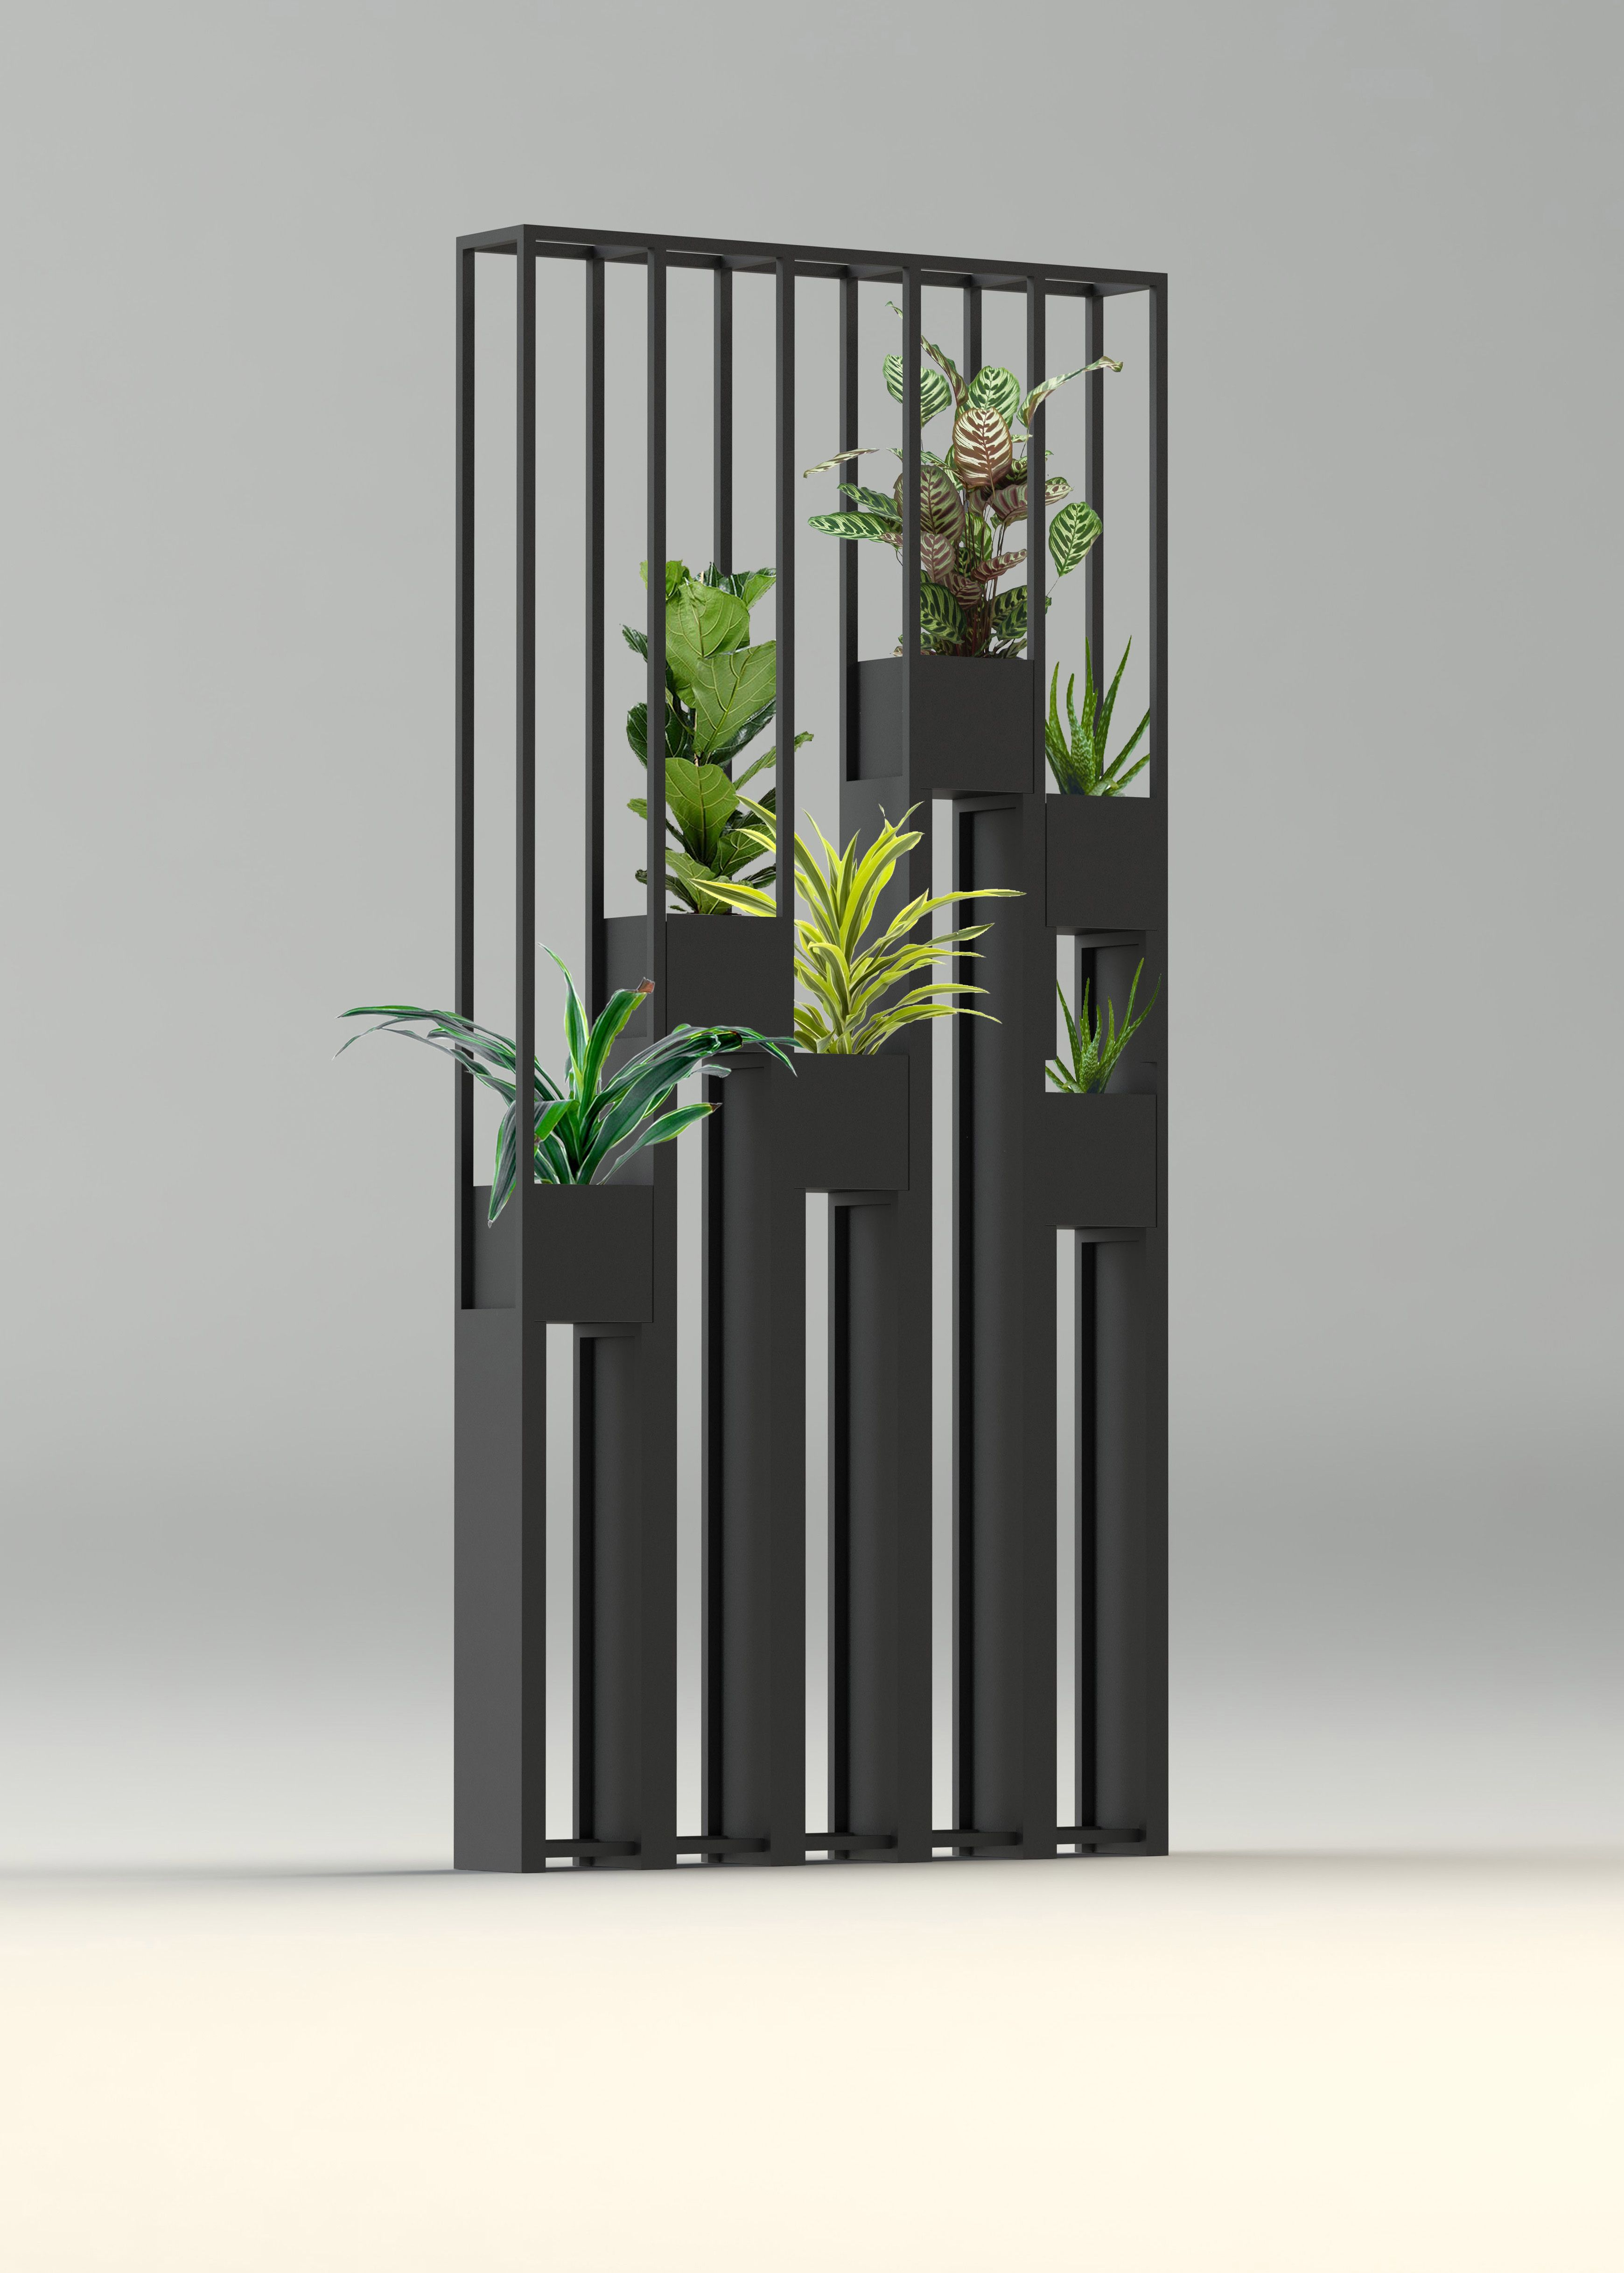 greentower claustra en m tal pour s parer vos pi ces ou jardins design by aur lia berauer. Black Bedroom Furniture Sets. Home Design Ideas